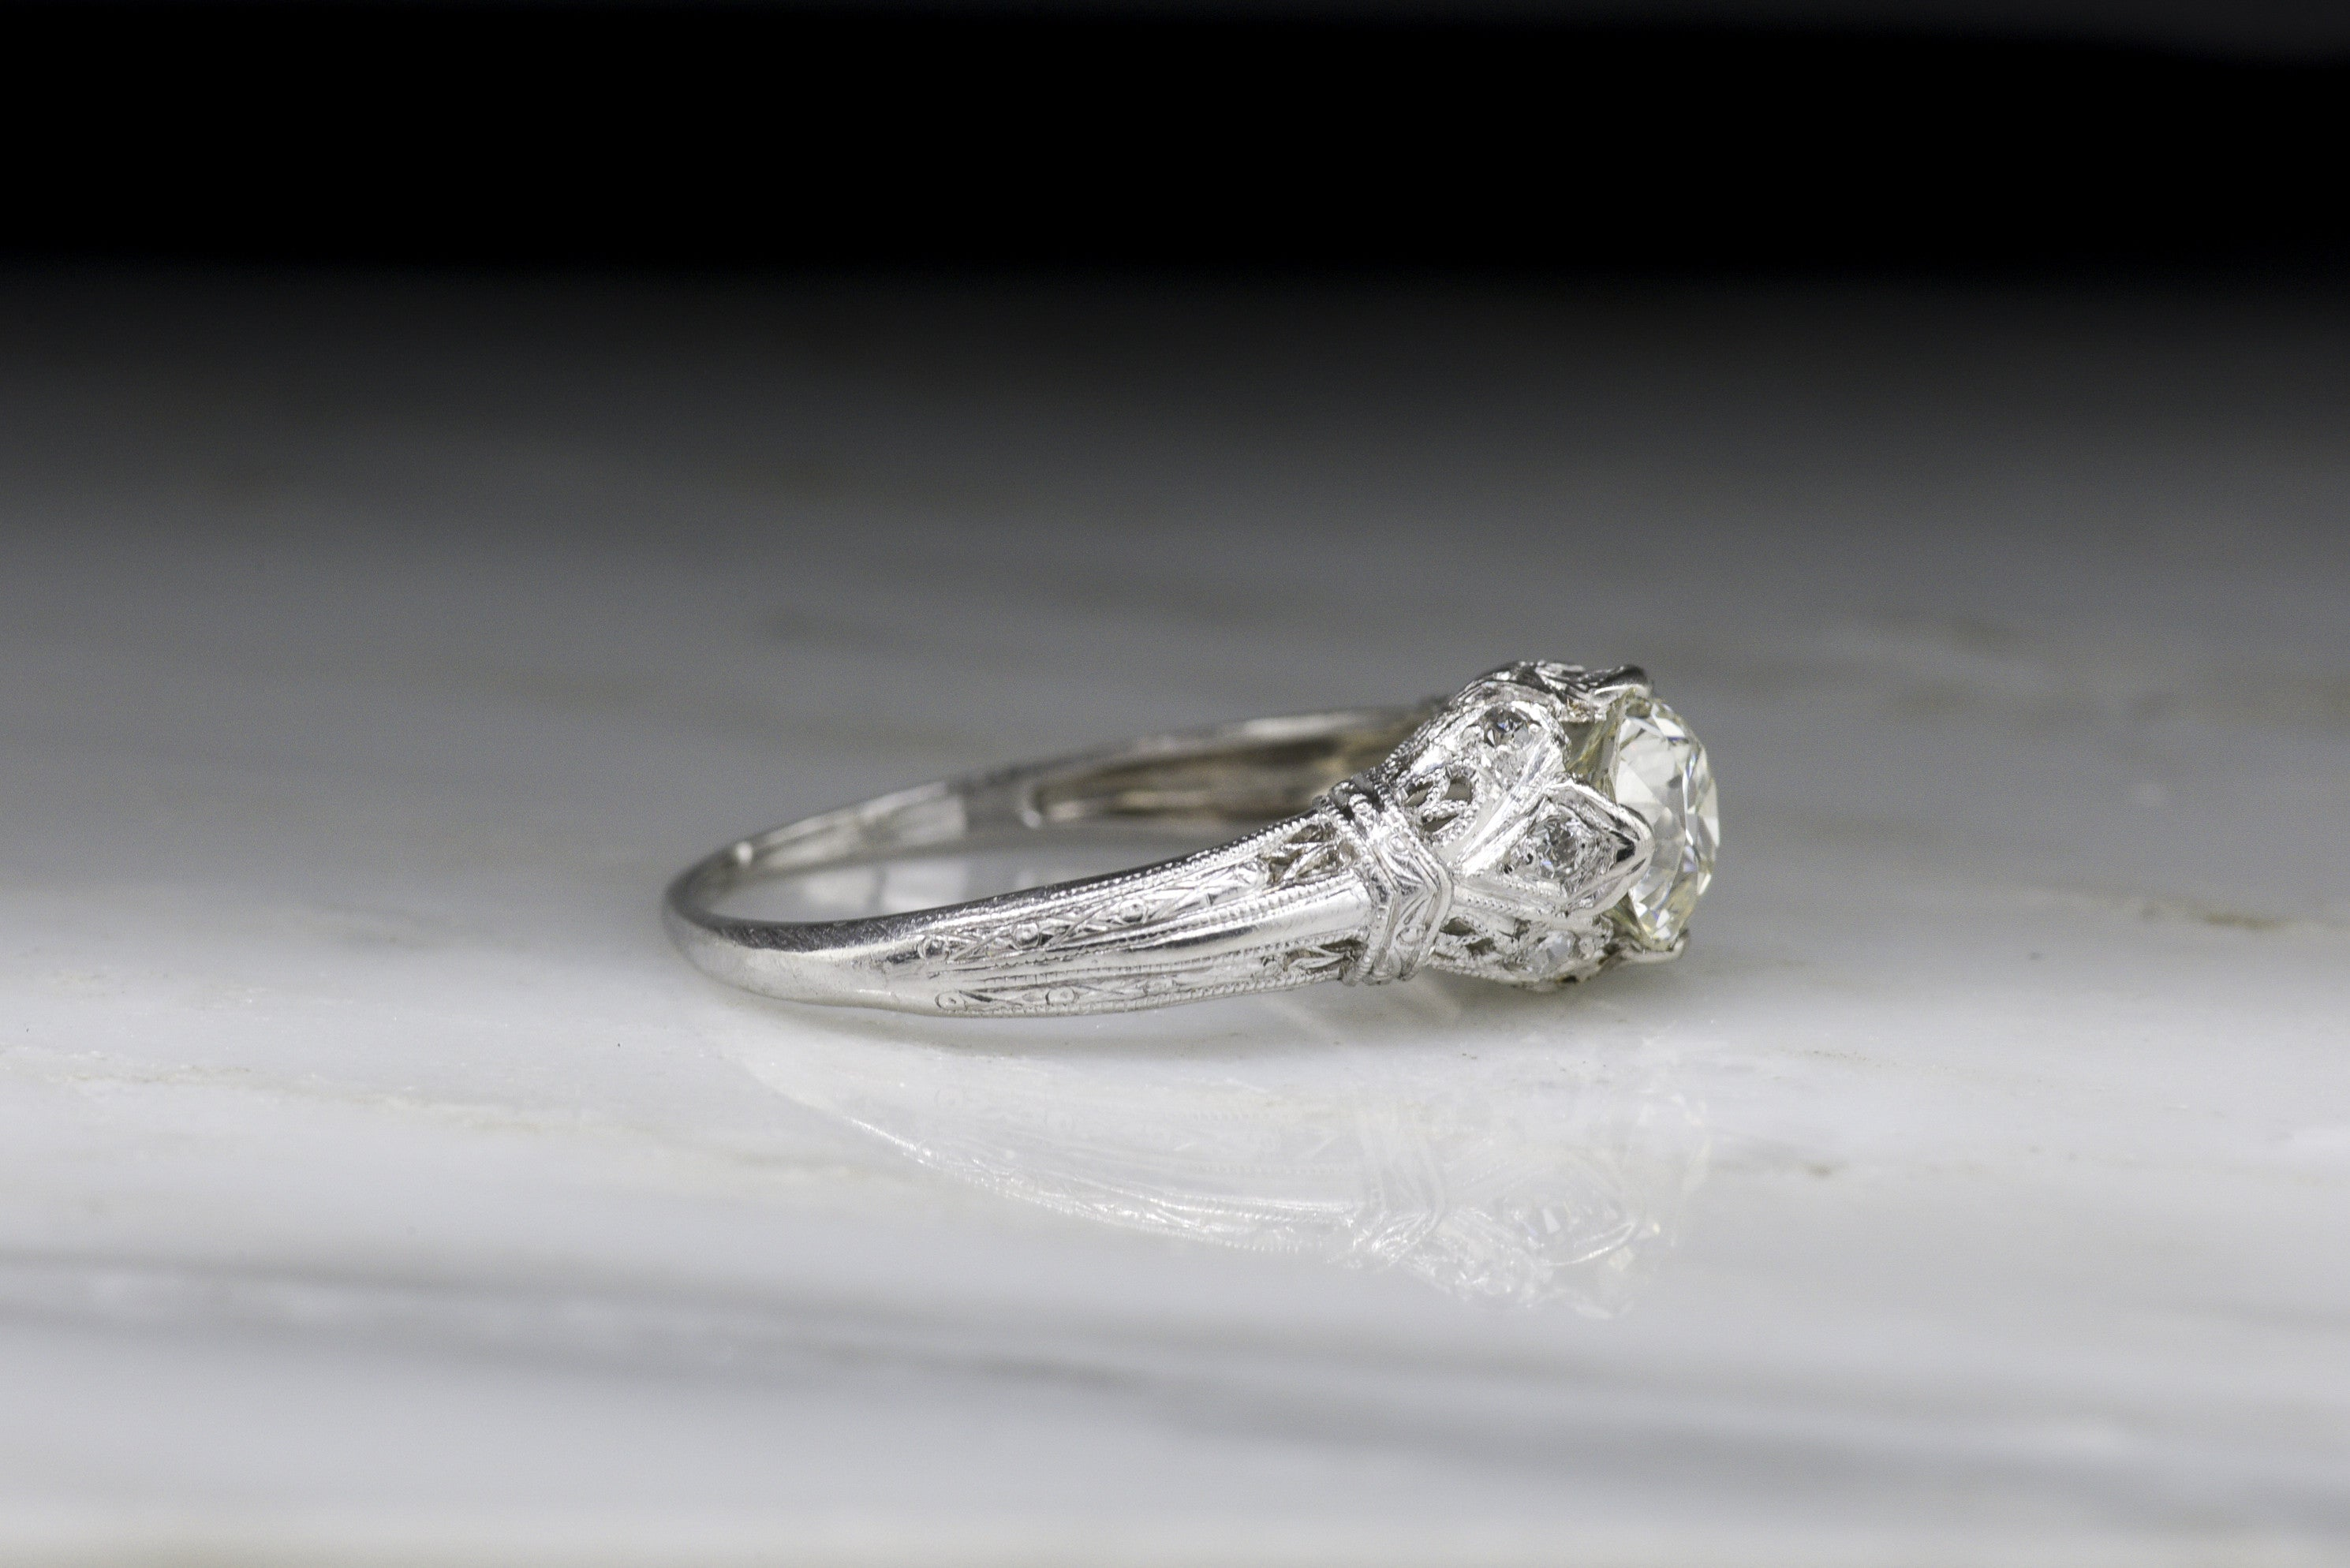 Antique Edwardian Engagement Ring With Old European Cut Diamond In Platinum  With Ornate Open Filigree, Hand Engraving, And Diamond Accents